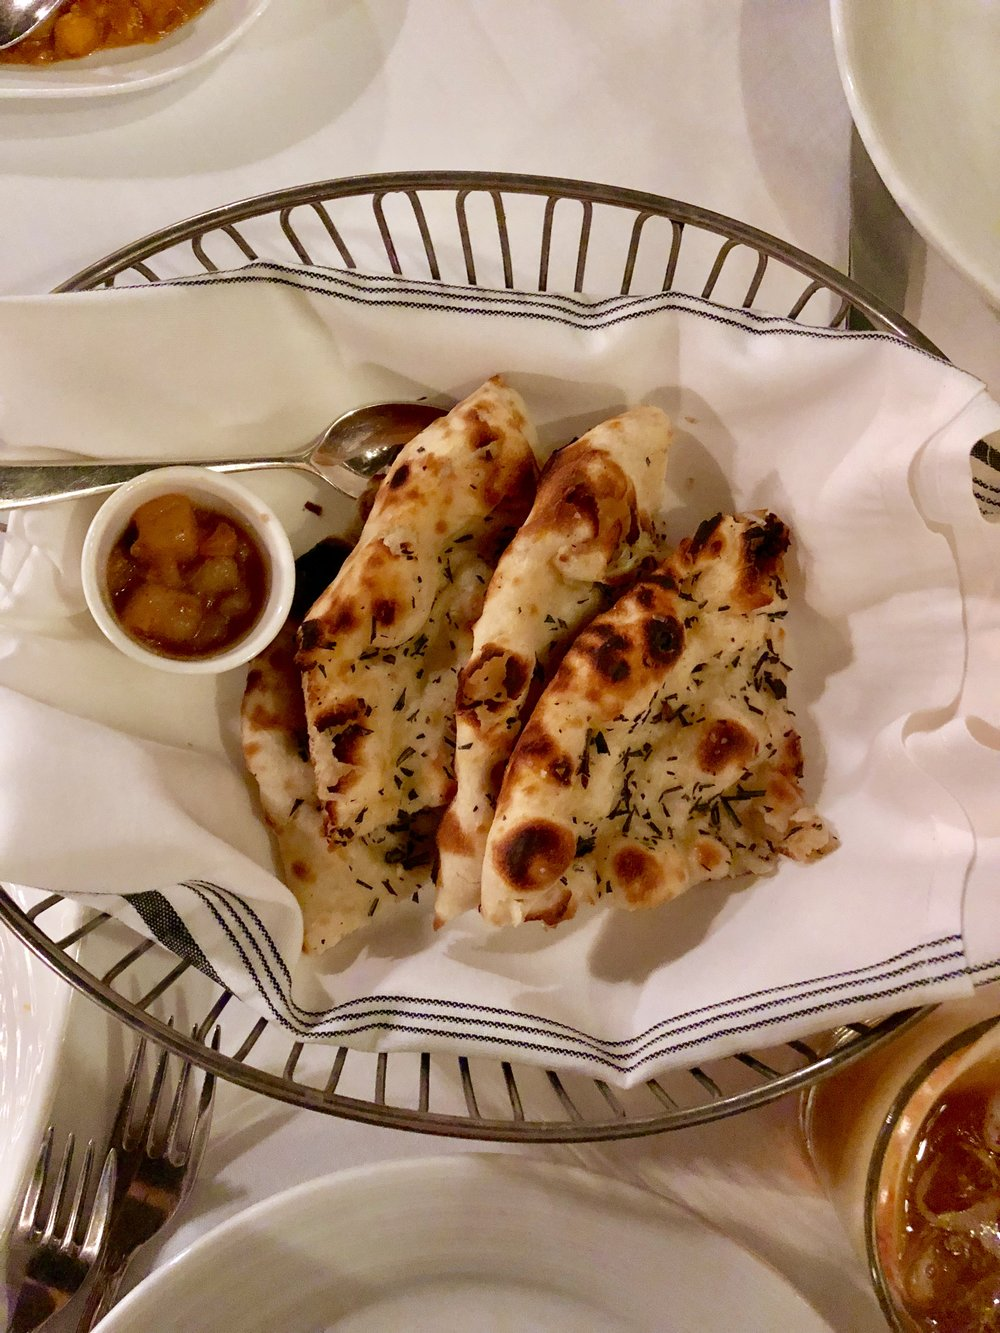 Rosemary and Sea Salt Naan at Ananda in Maple Lawn — Absolutely delicious!